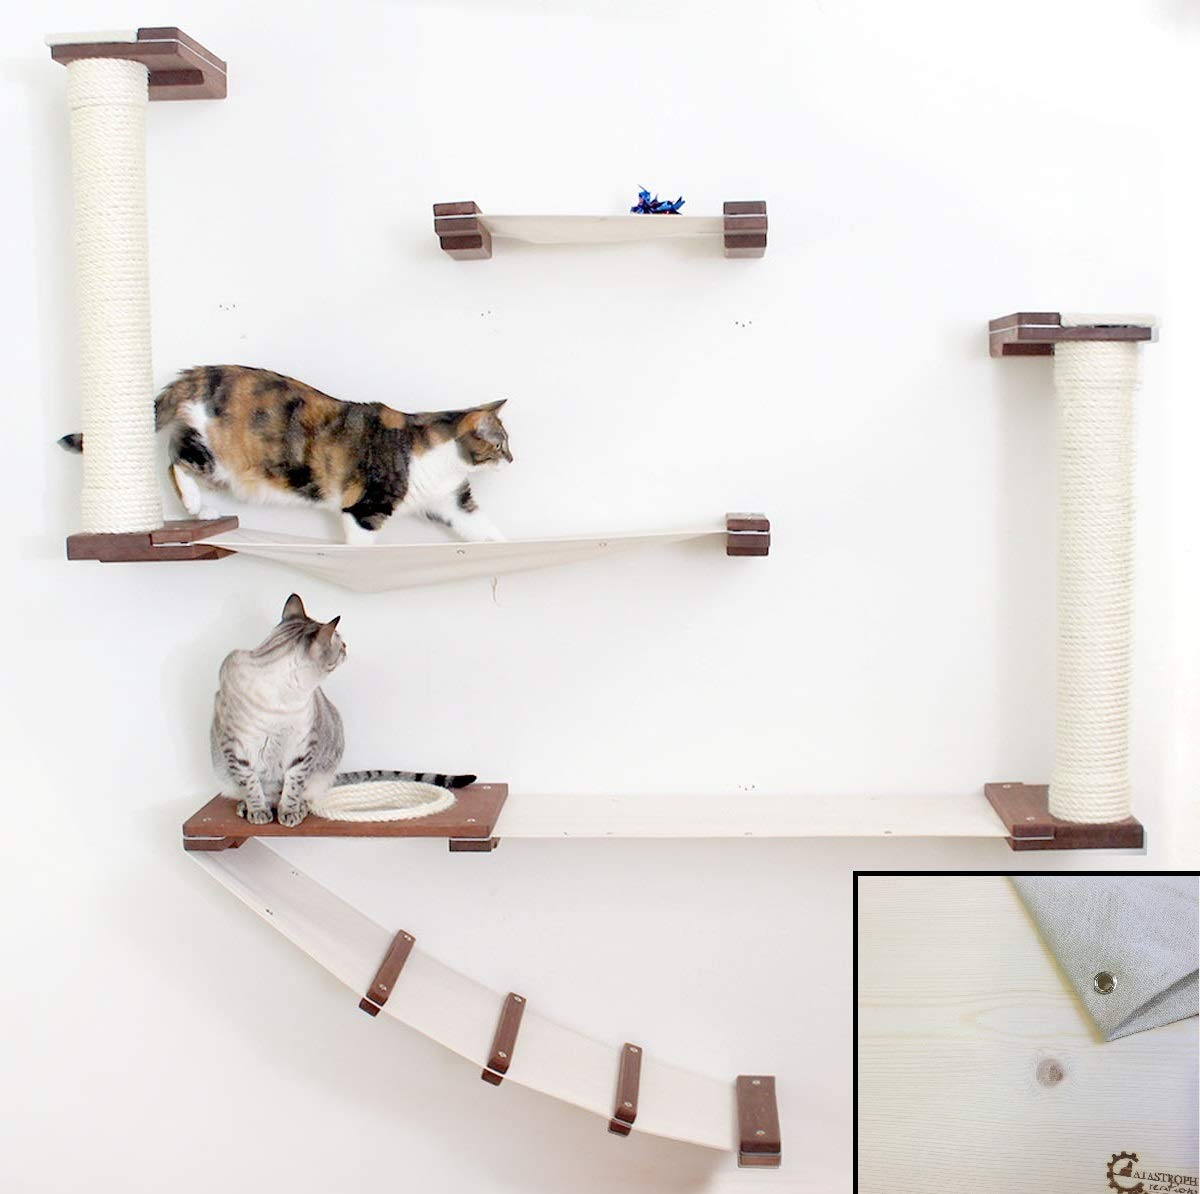 CatastrophiCreations Cat Mod Roman - Multiple-Level Cat Hammock & Climbing Activity Center - Handcrafted Wall-Mounted Cat Tree Shelves by CatastrophiCreations